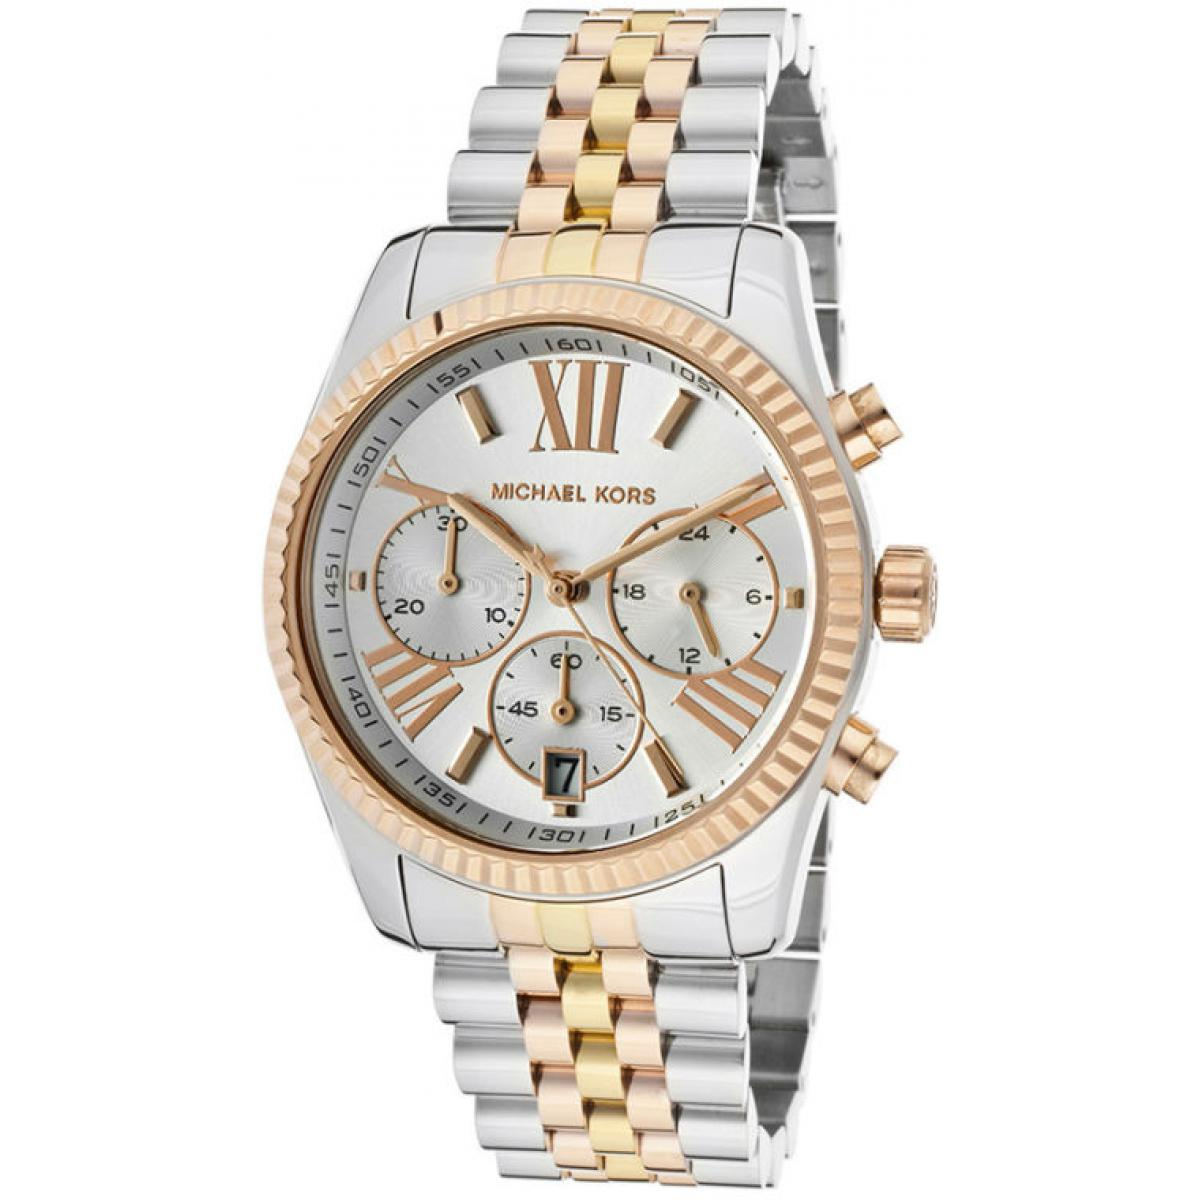 Montre Michael Kors LEXINGTON MK5735 - Montre Quartz Tricolore Mixte